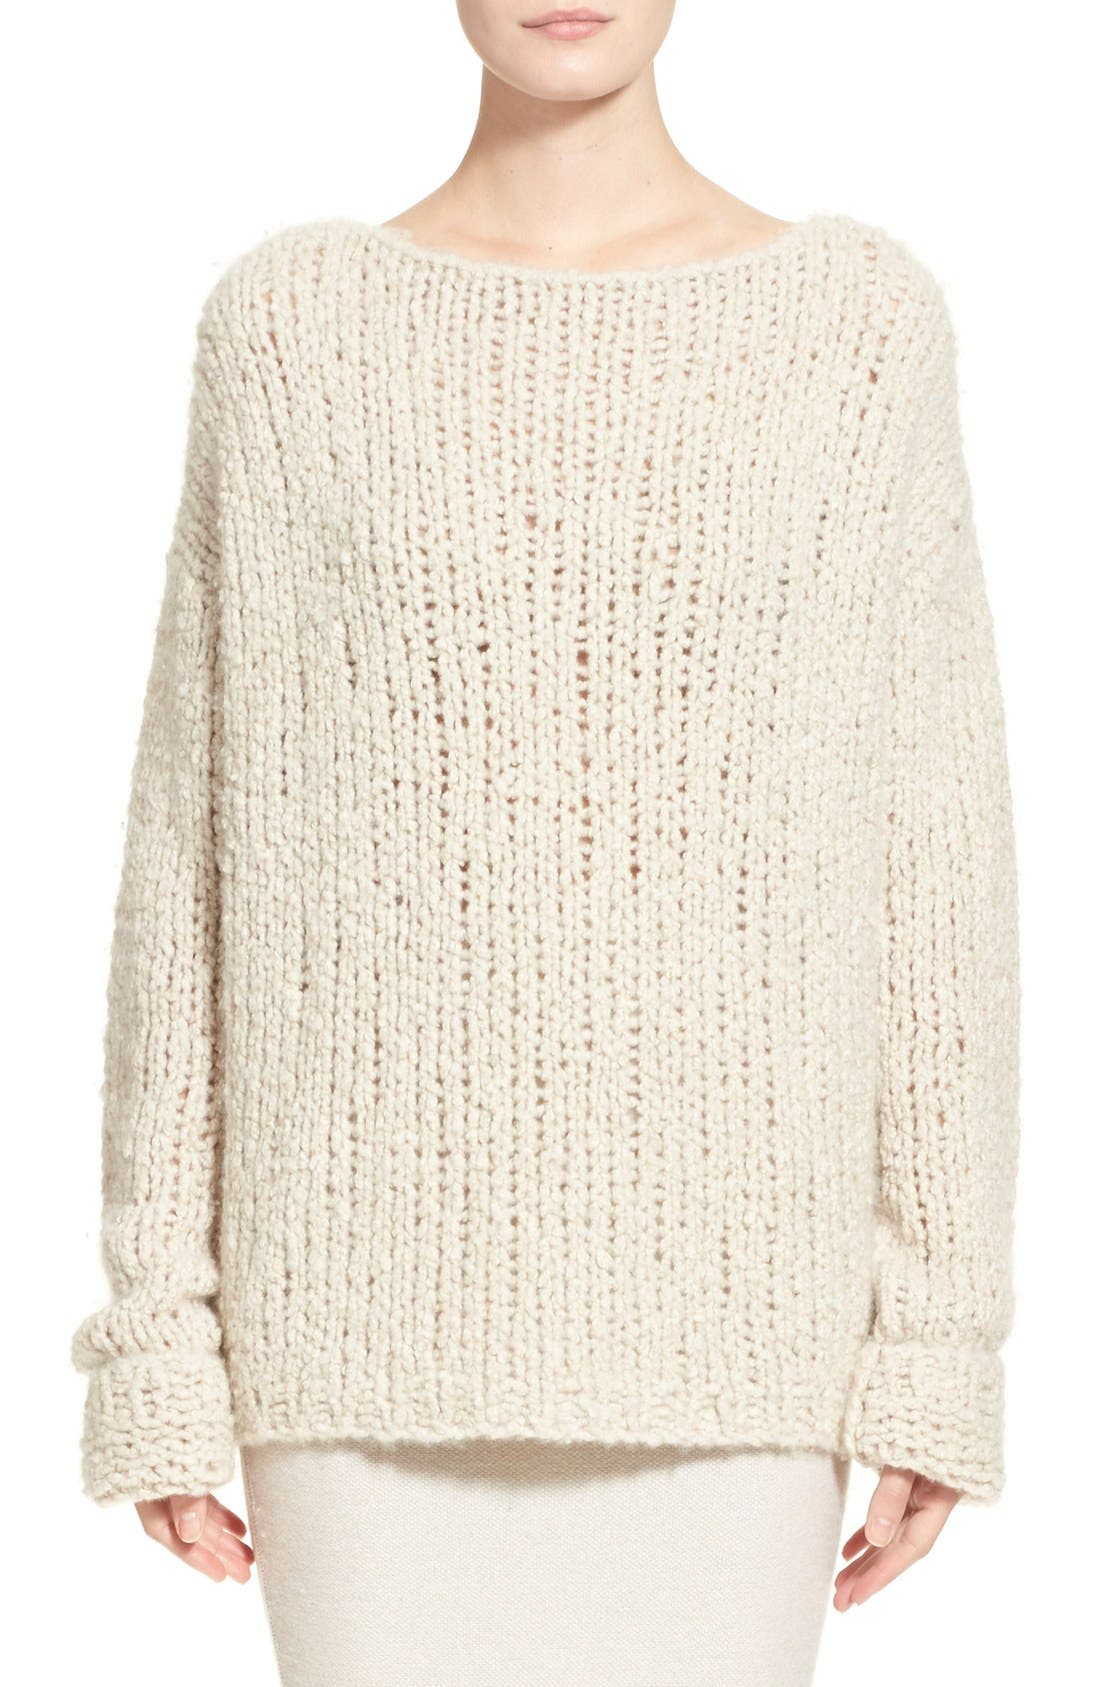 Donna KaranCollection Hand Knit Cashmere Sweater,                             Main thumbnail 1, color,                             282